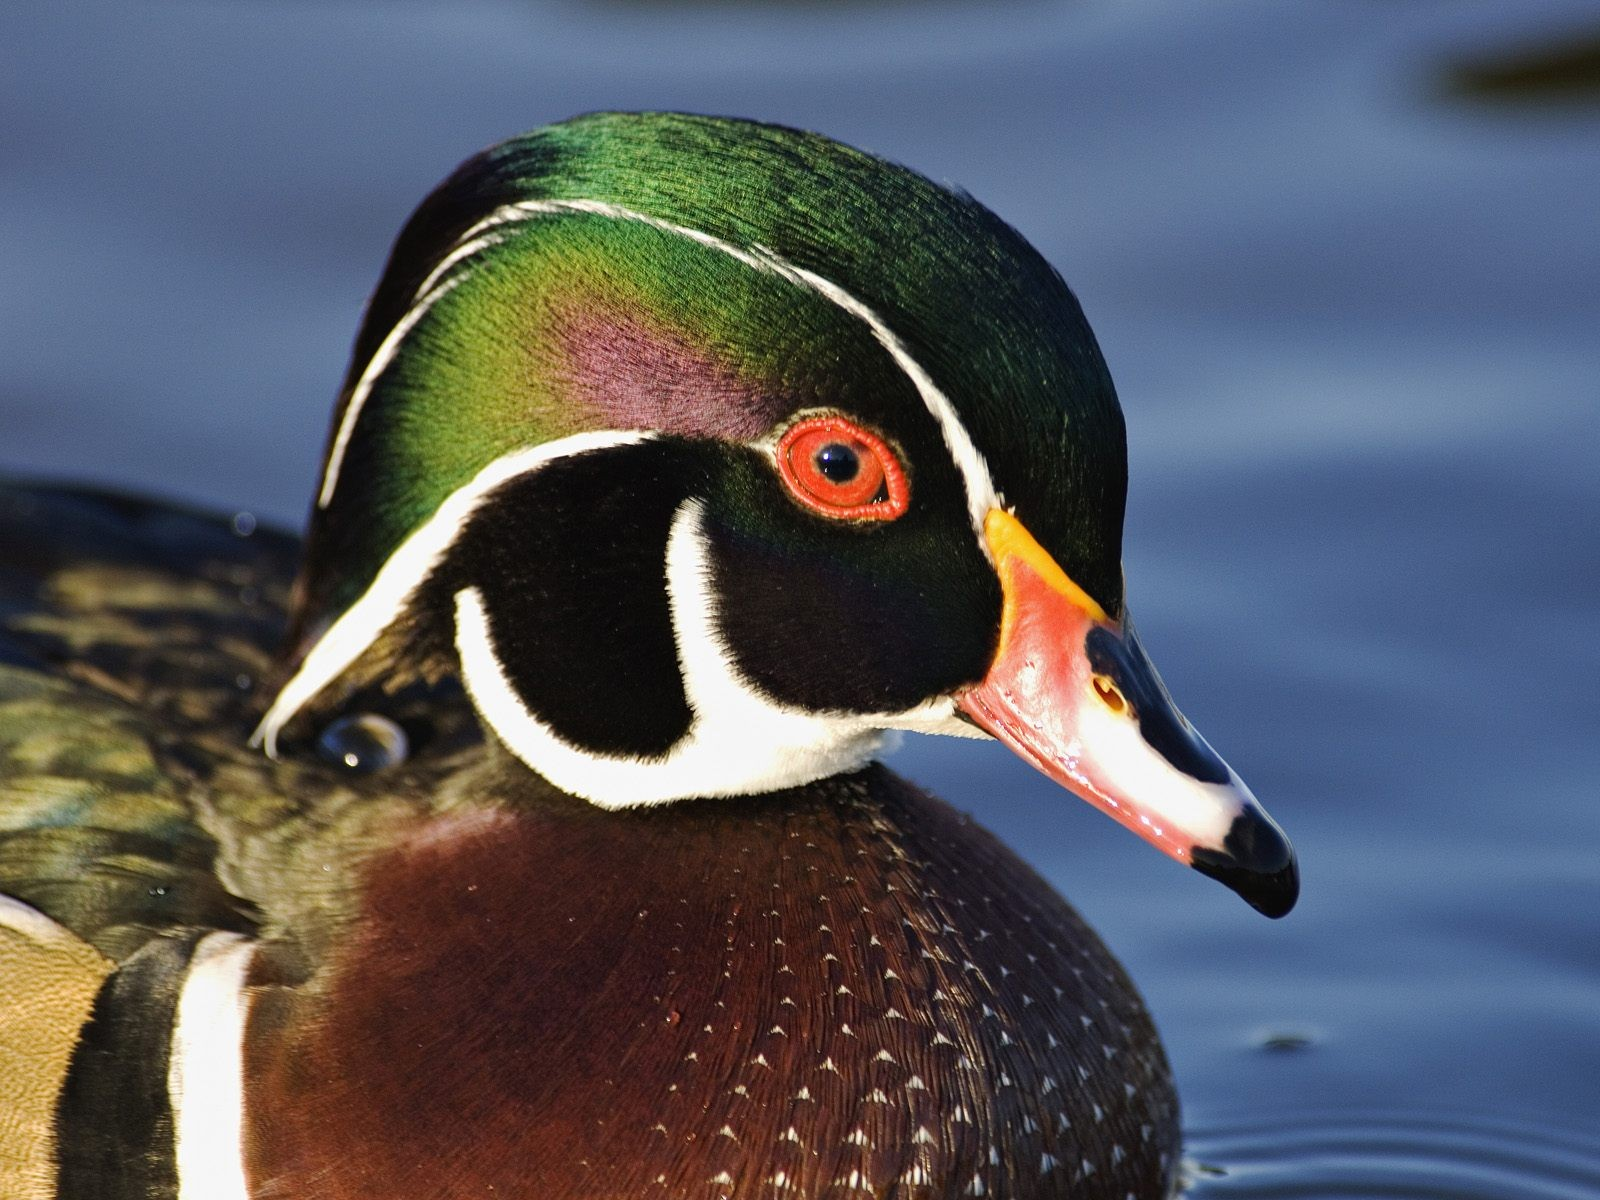 http://1.bp.blogspot.com/-hlSVqjlaTe4/UIbc14jysDI/AAAAAAAAFsg/EtE2aTZPkqU/s1600/male_wood_duck_desktop_wallpaper_24741.jpg